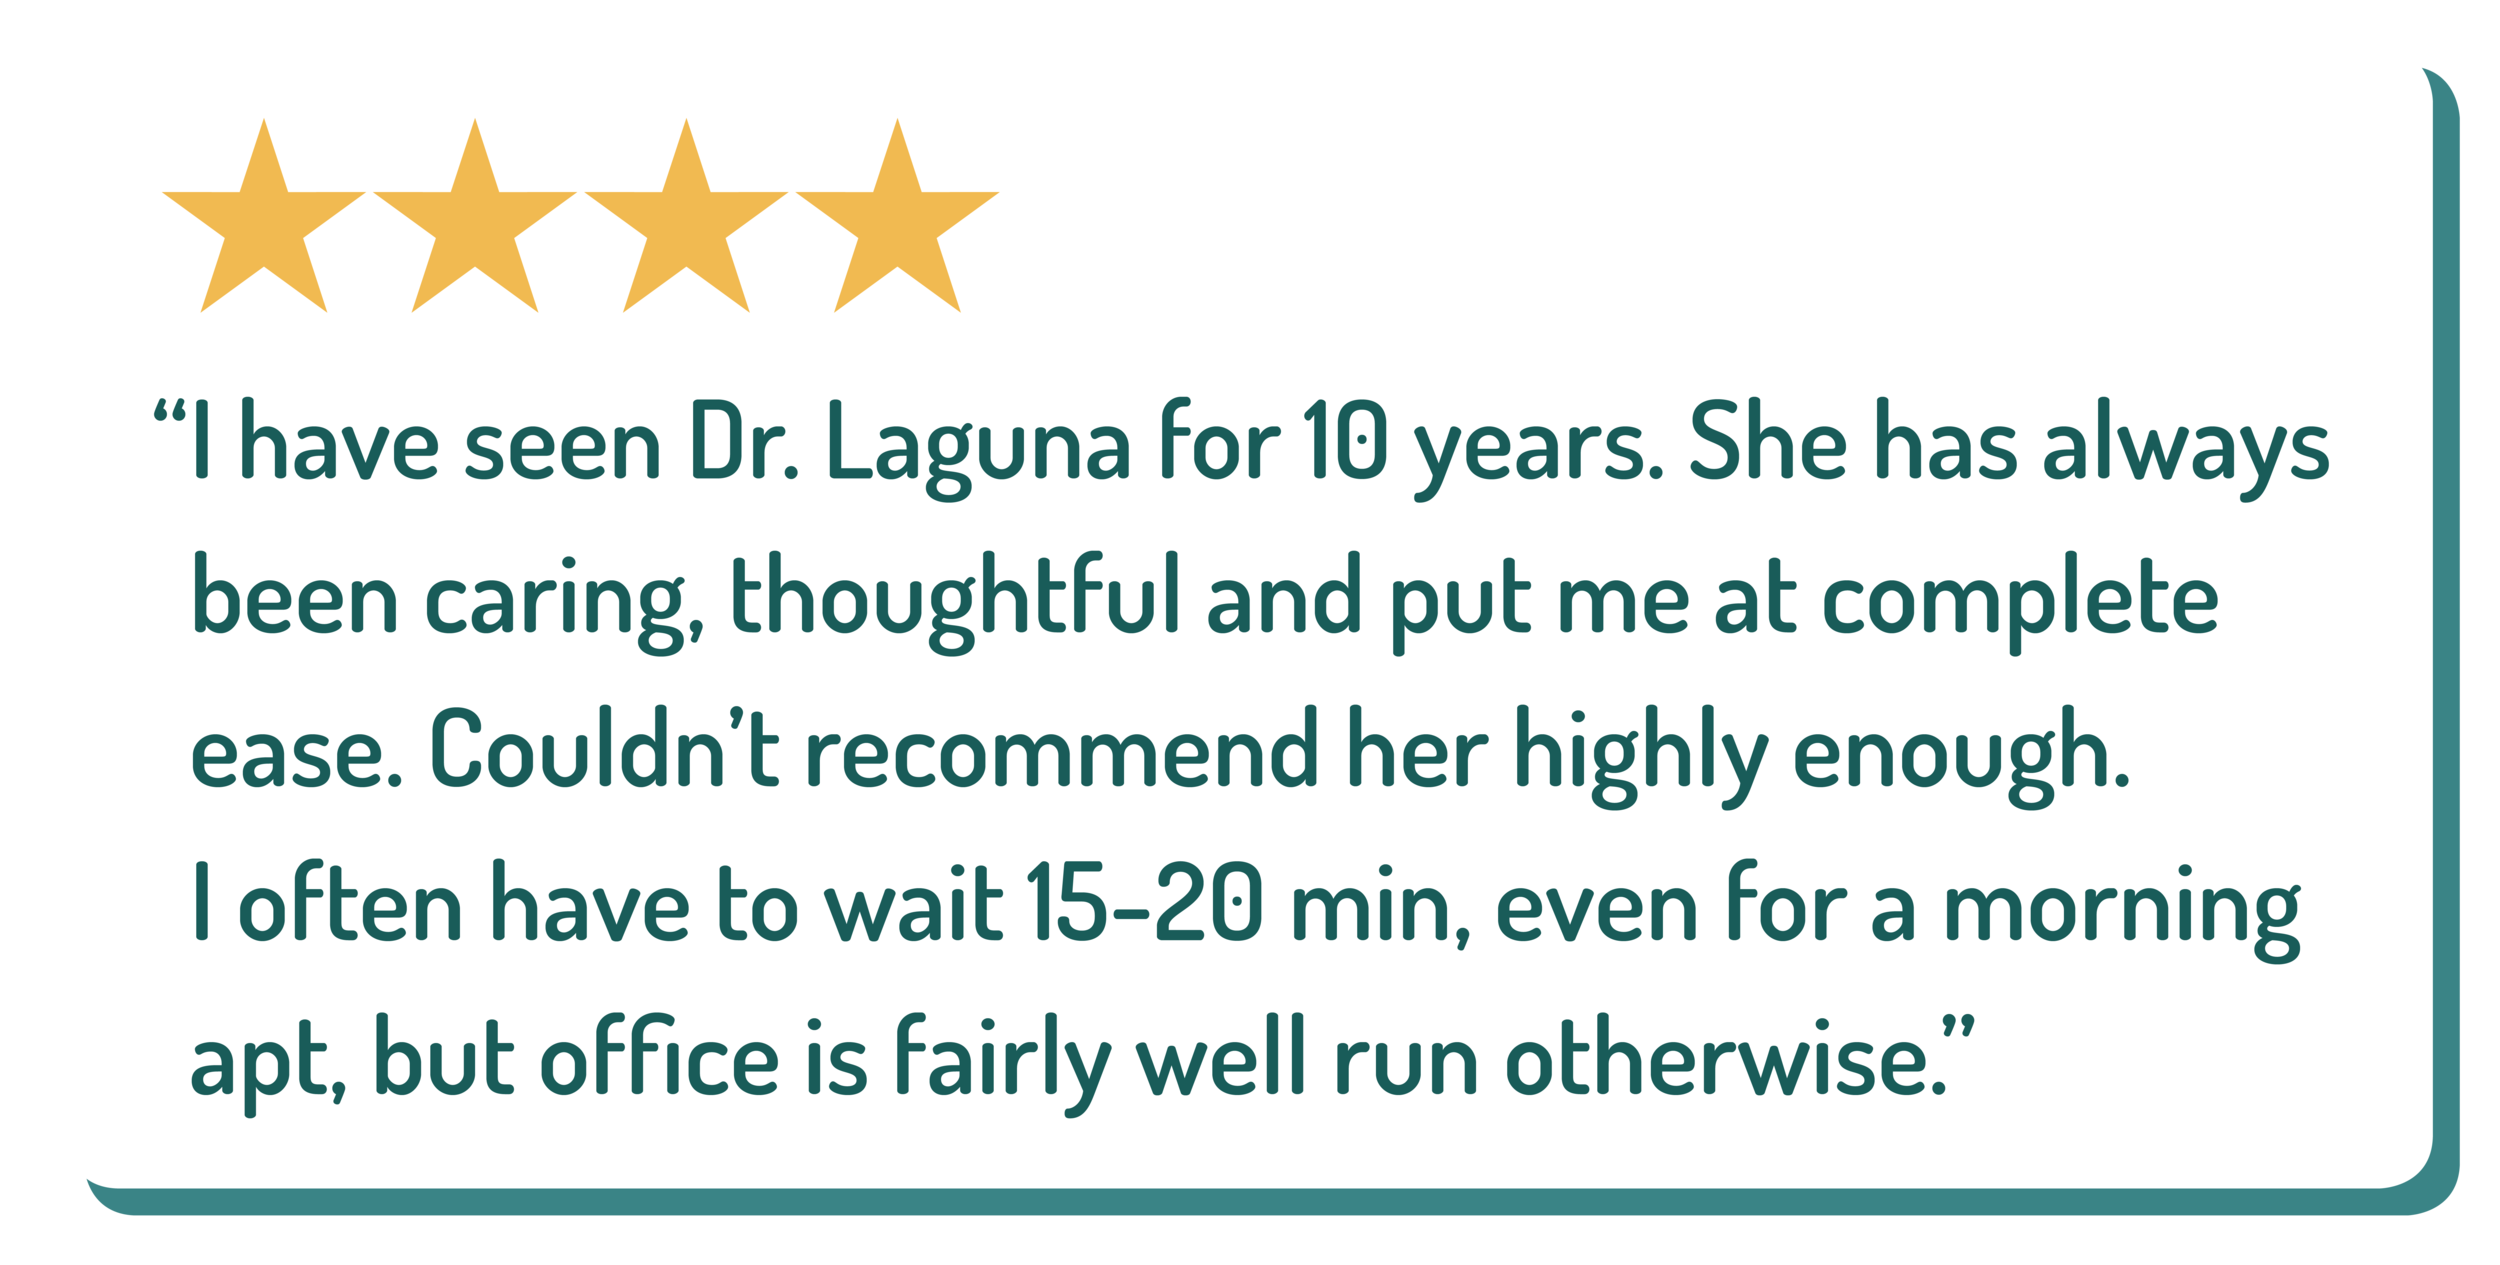 graphic of an online four star review recommending the primary care provider named Dr. Laguna